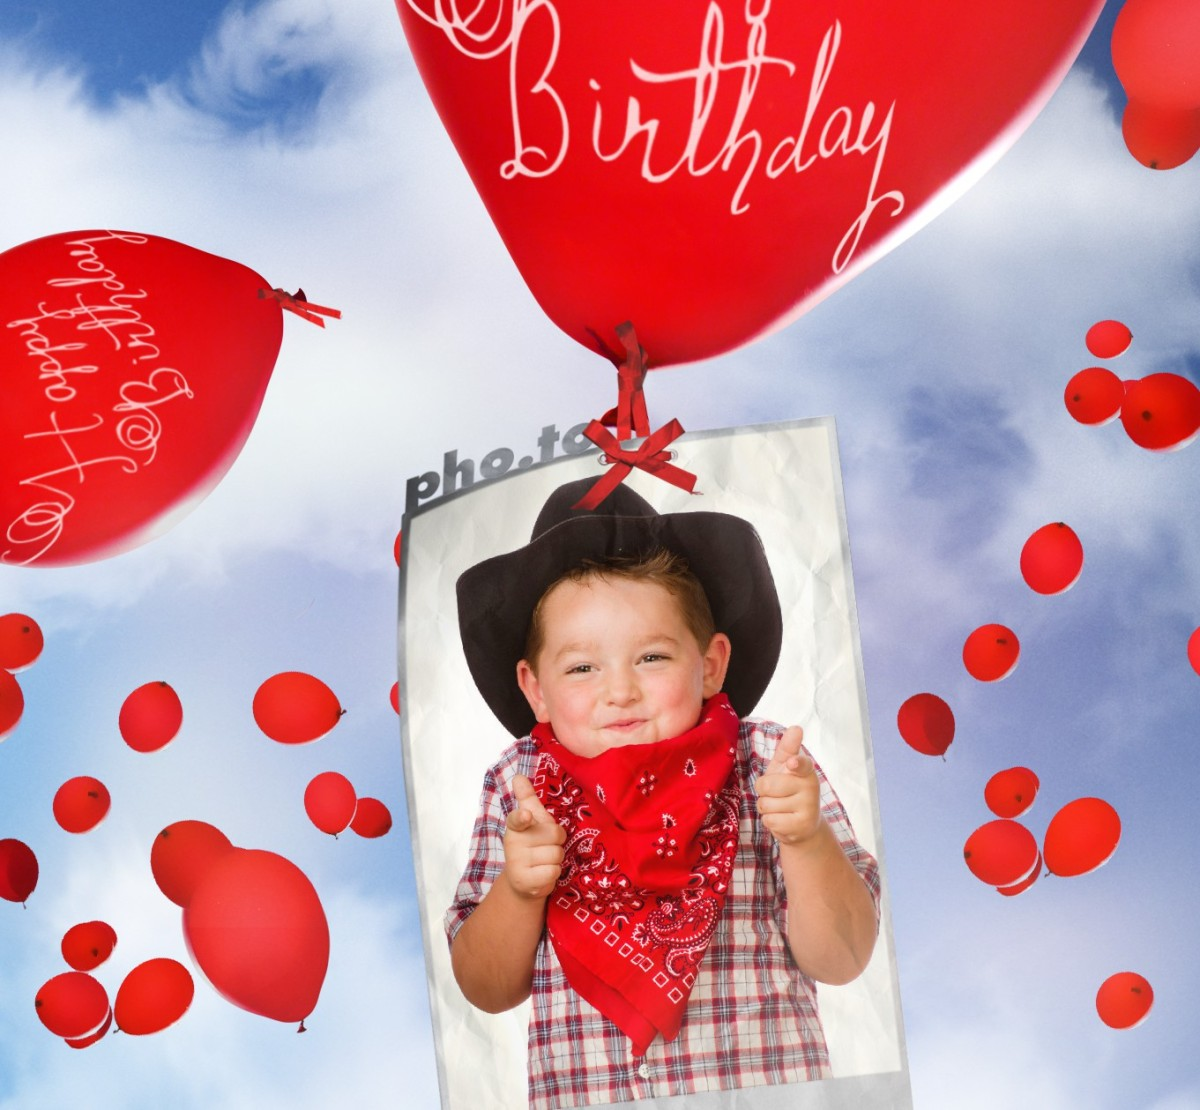 create happy birthday card with photo online ; Birthday-Ecard-With-Balloons-Cool-Happy-Birthday-Card-Maker